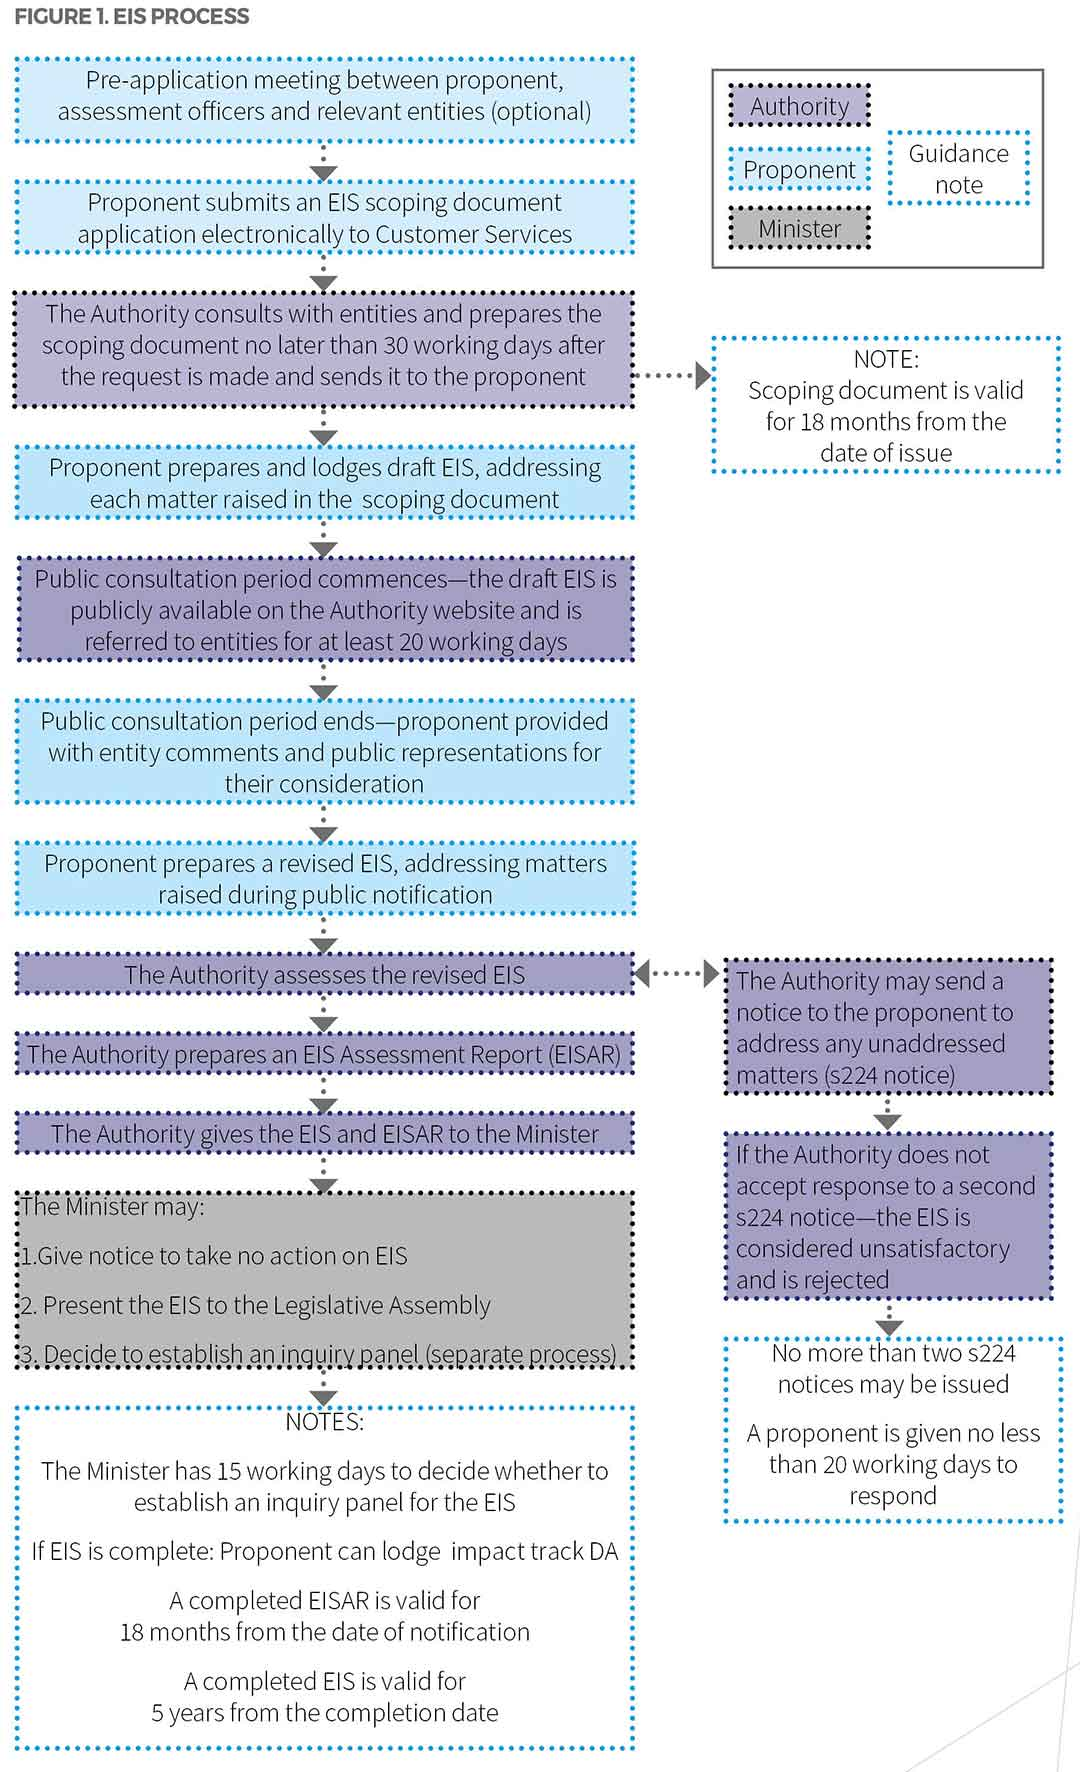 Flowchart of steps the Environmental Impact Statement (EIS) process